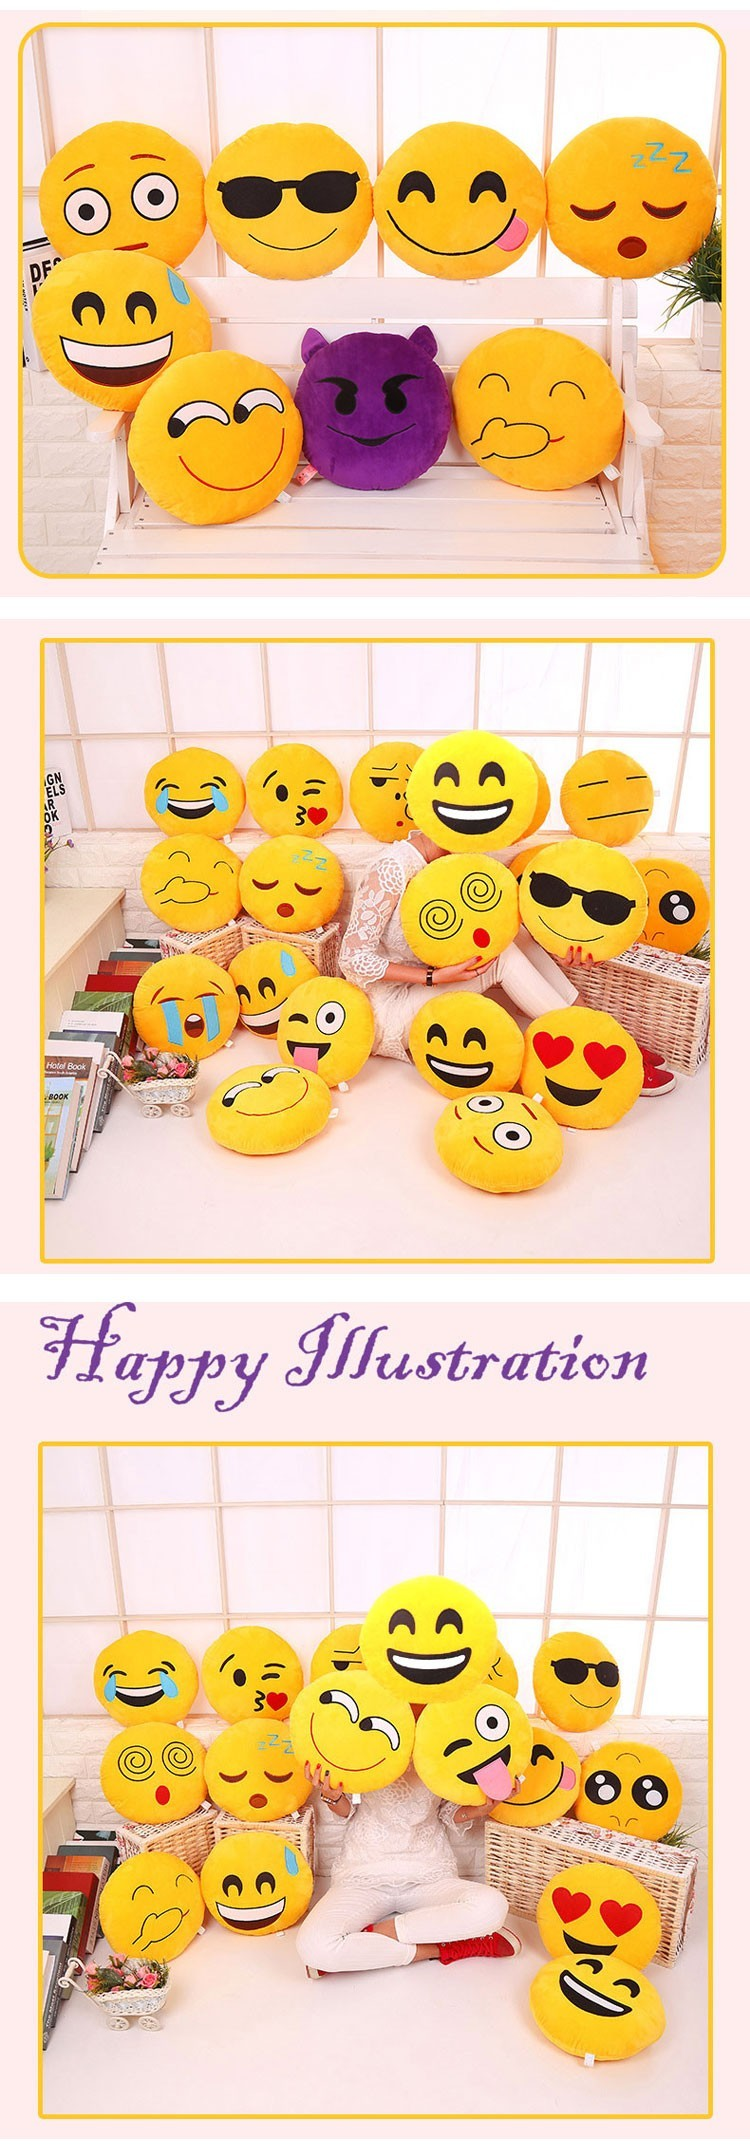 Smile Pillow Factory,pillow Emoji Stuffed Toys Plush Stuffed